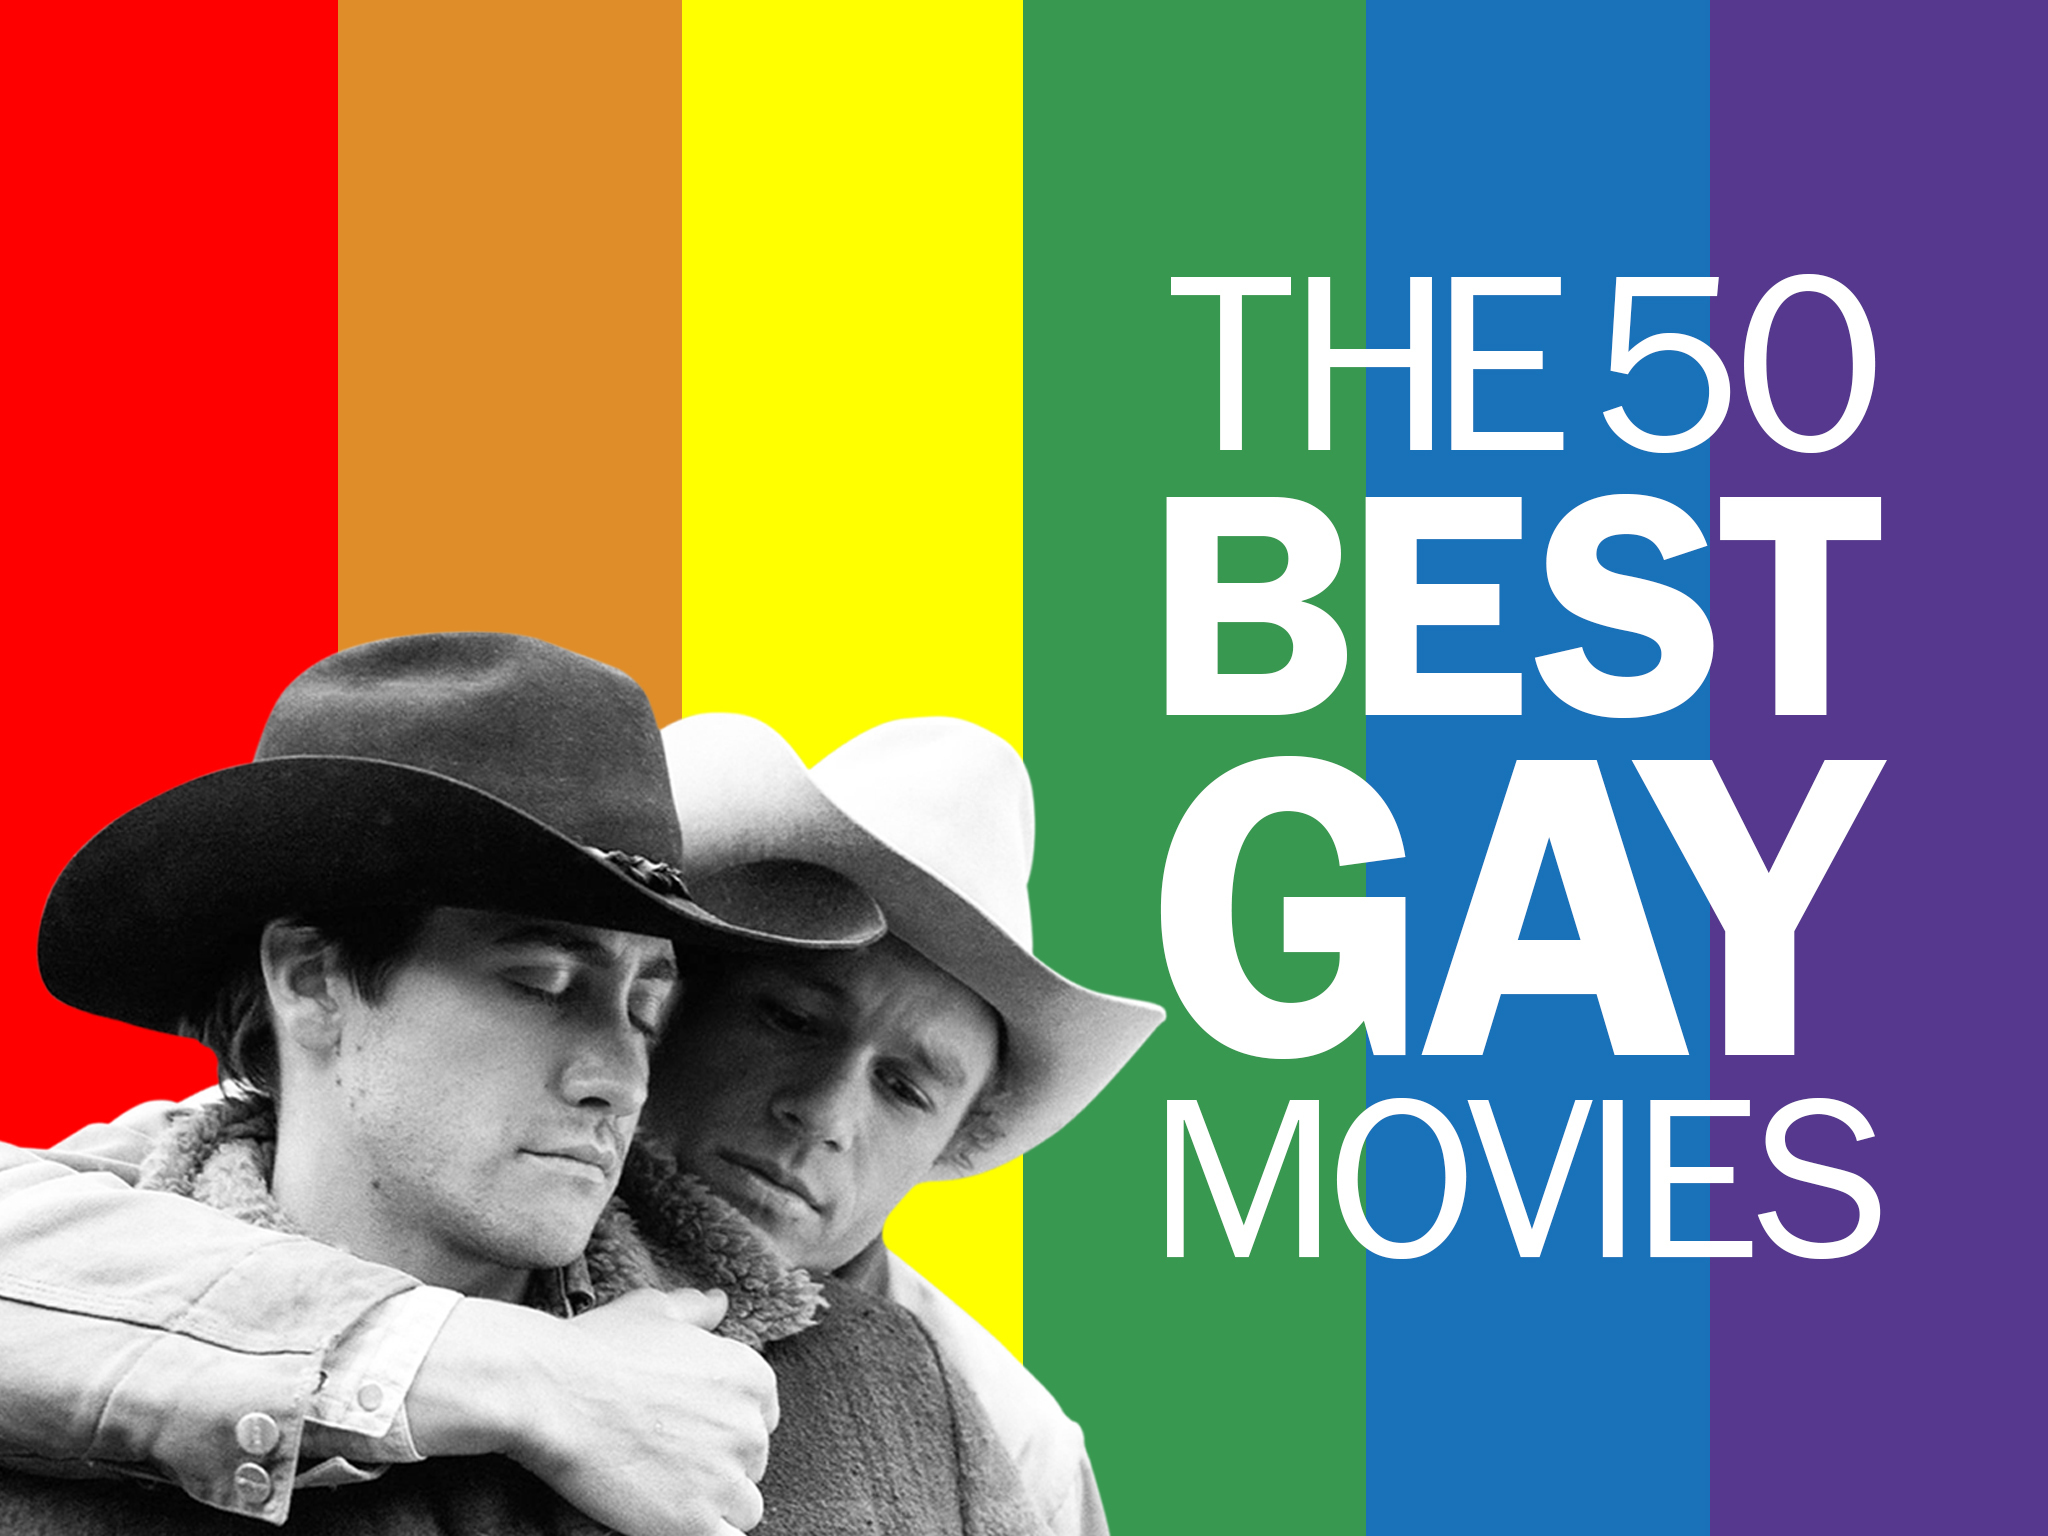 from Declan best gay movie picks